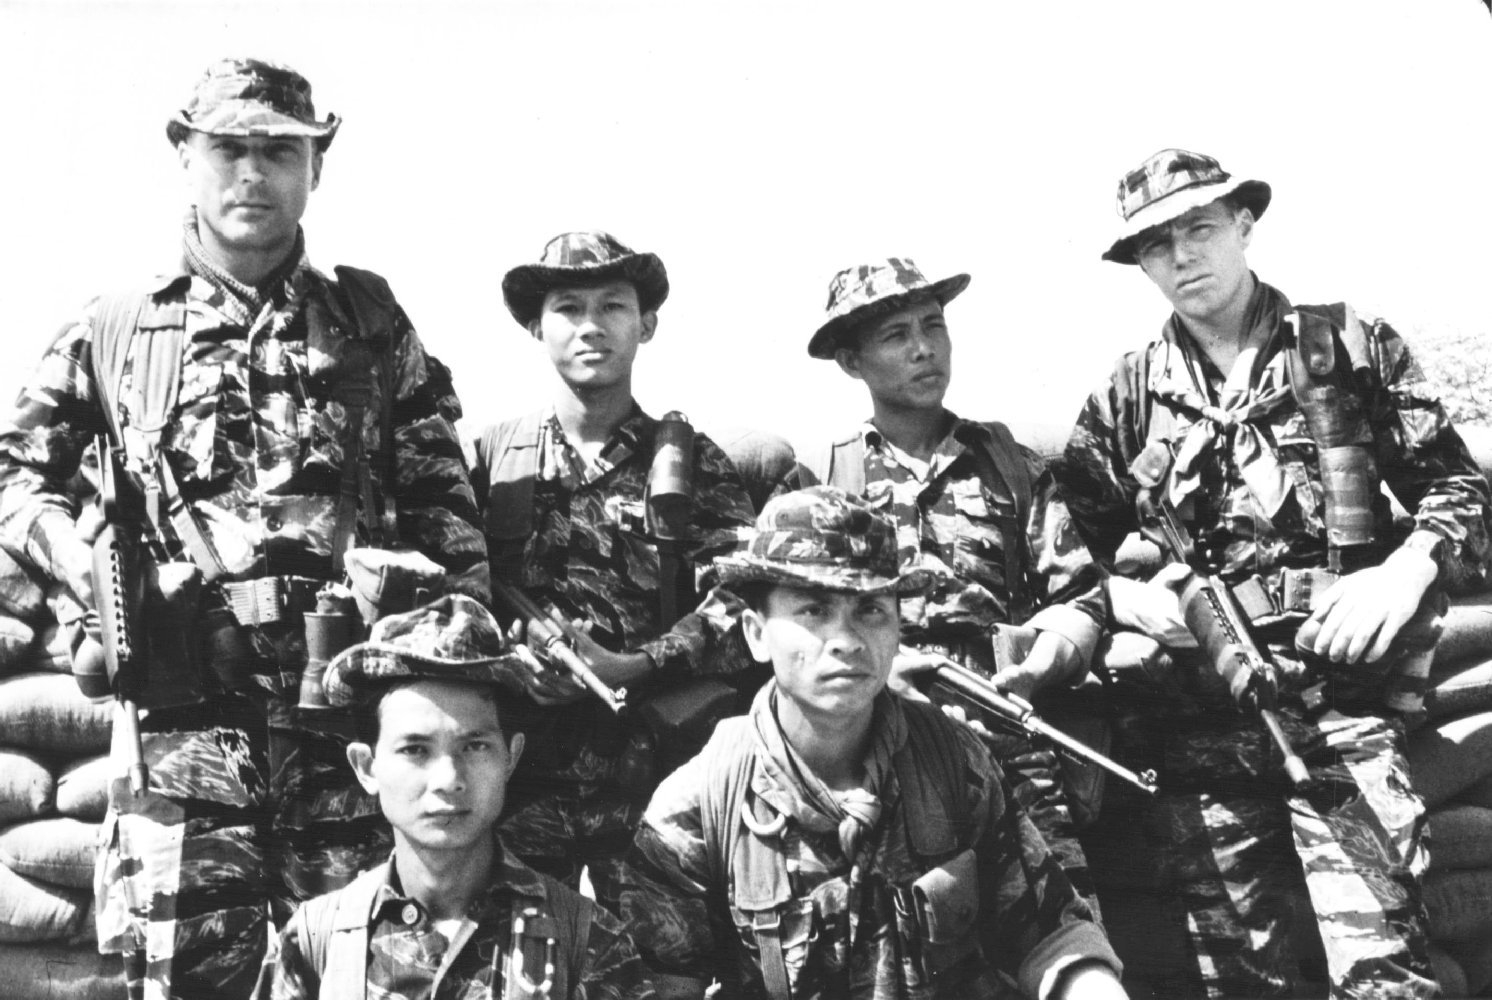 https://upload.wikimedia.org/wikipedia/commons/0/07/ARVN_and_US_Special_Forces.jpg